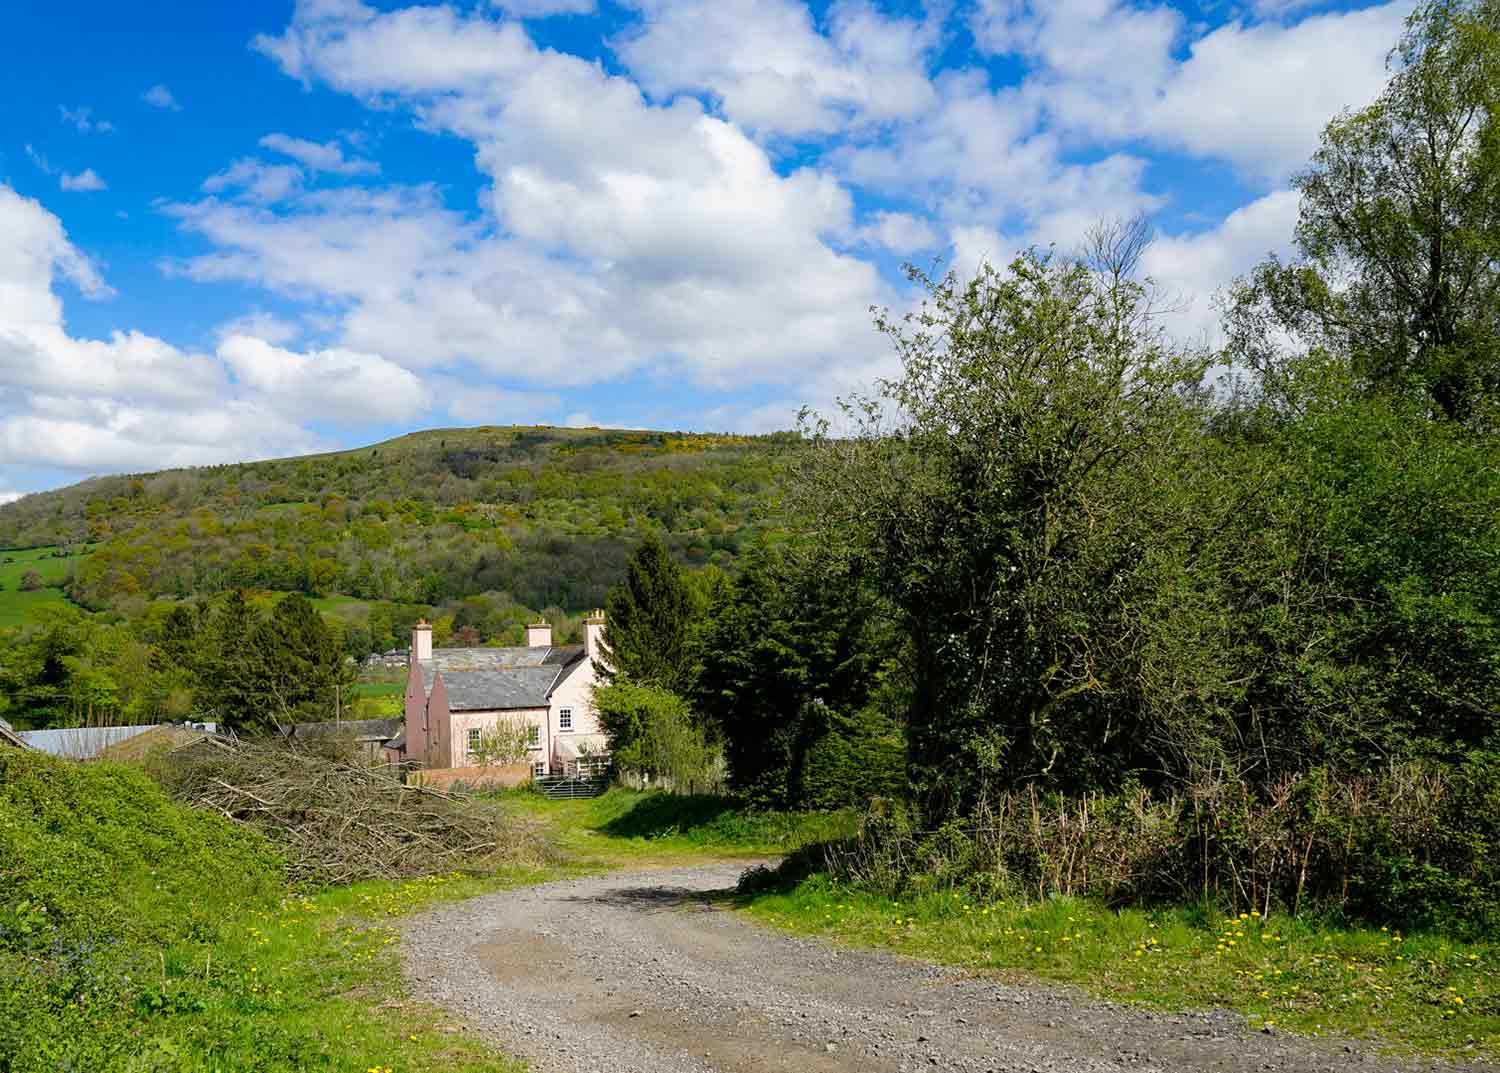 Dog-friendly-holiday-accommodation-in-the-Welsh-Brecon-Beacons.jpg